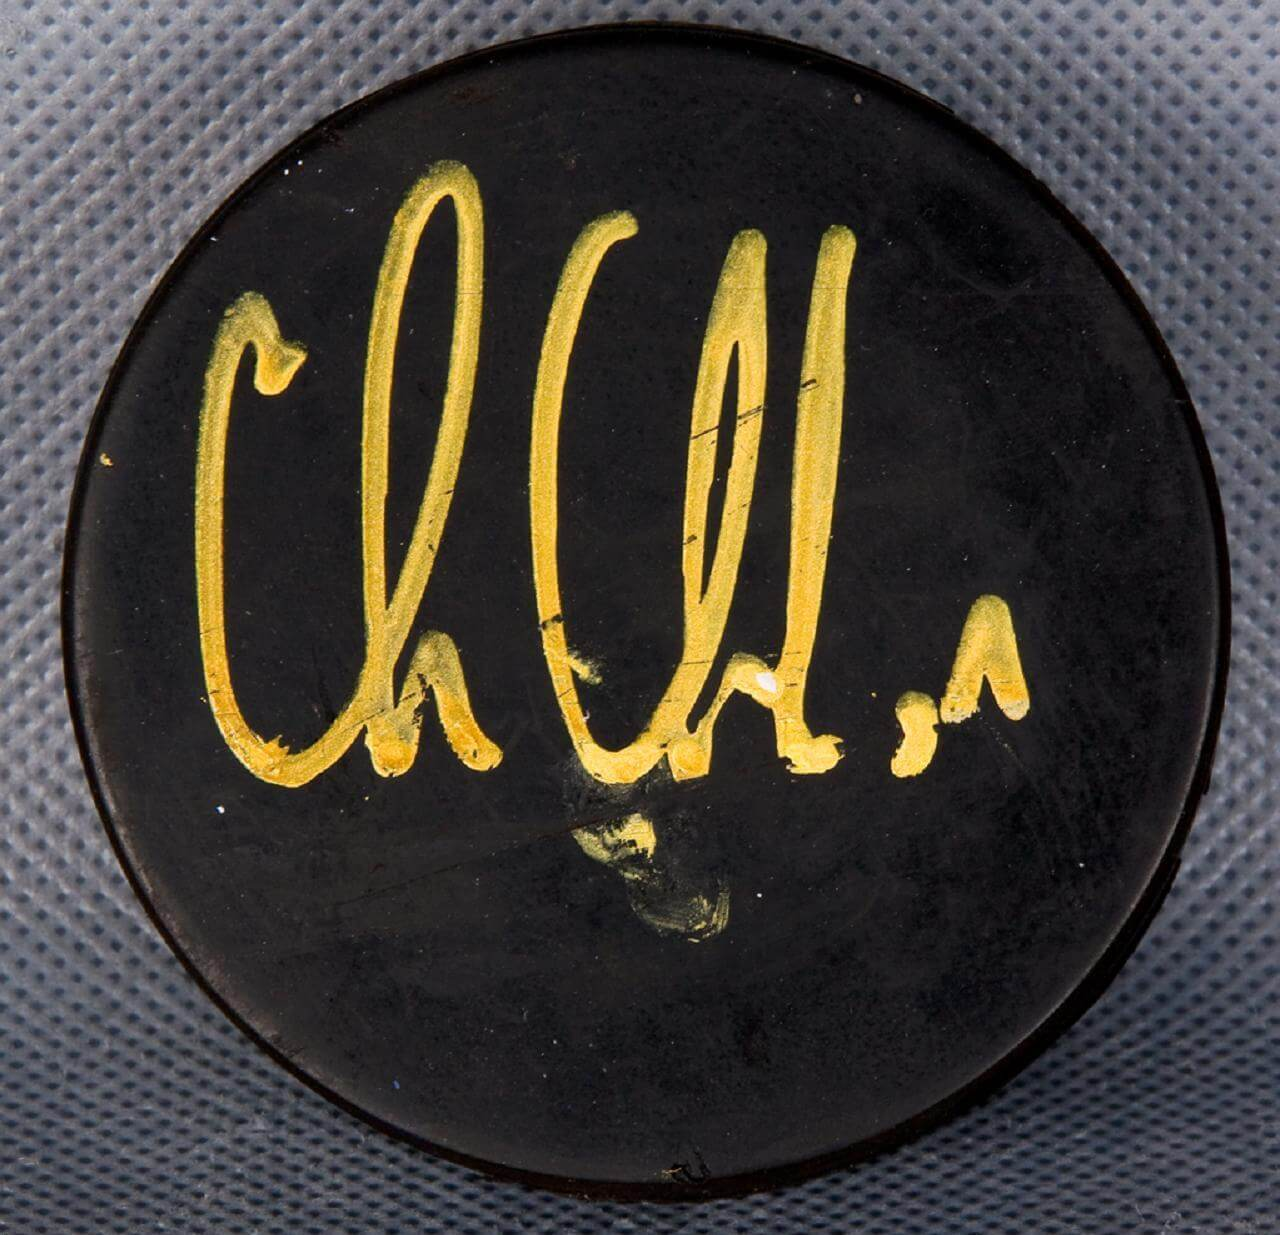 Detroit Red Wings Chris Chelios Signed Hockey Puck Coa